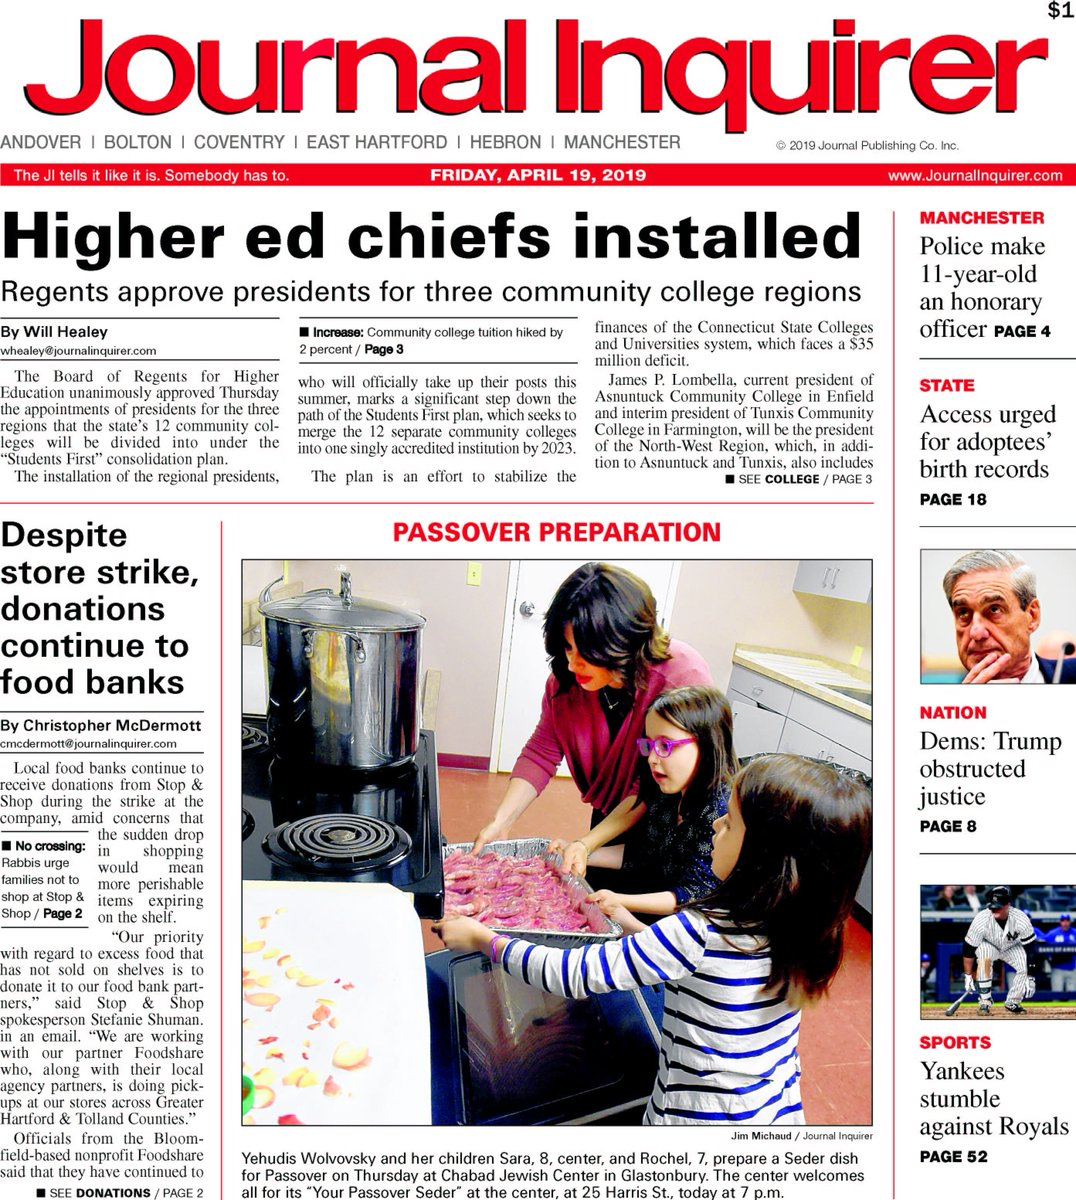 Today's front page. Visit http://journalinquirer.com for these stories and more. #ctnews #frontpage